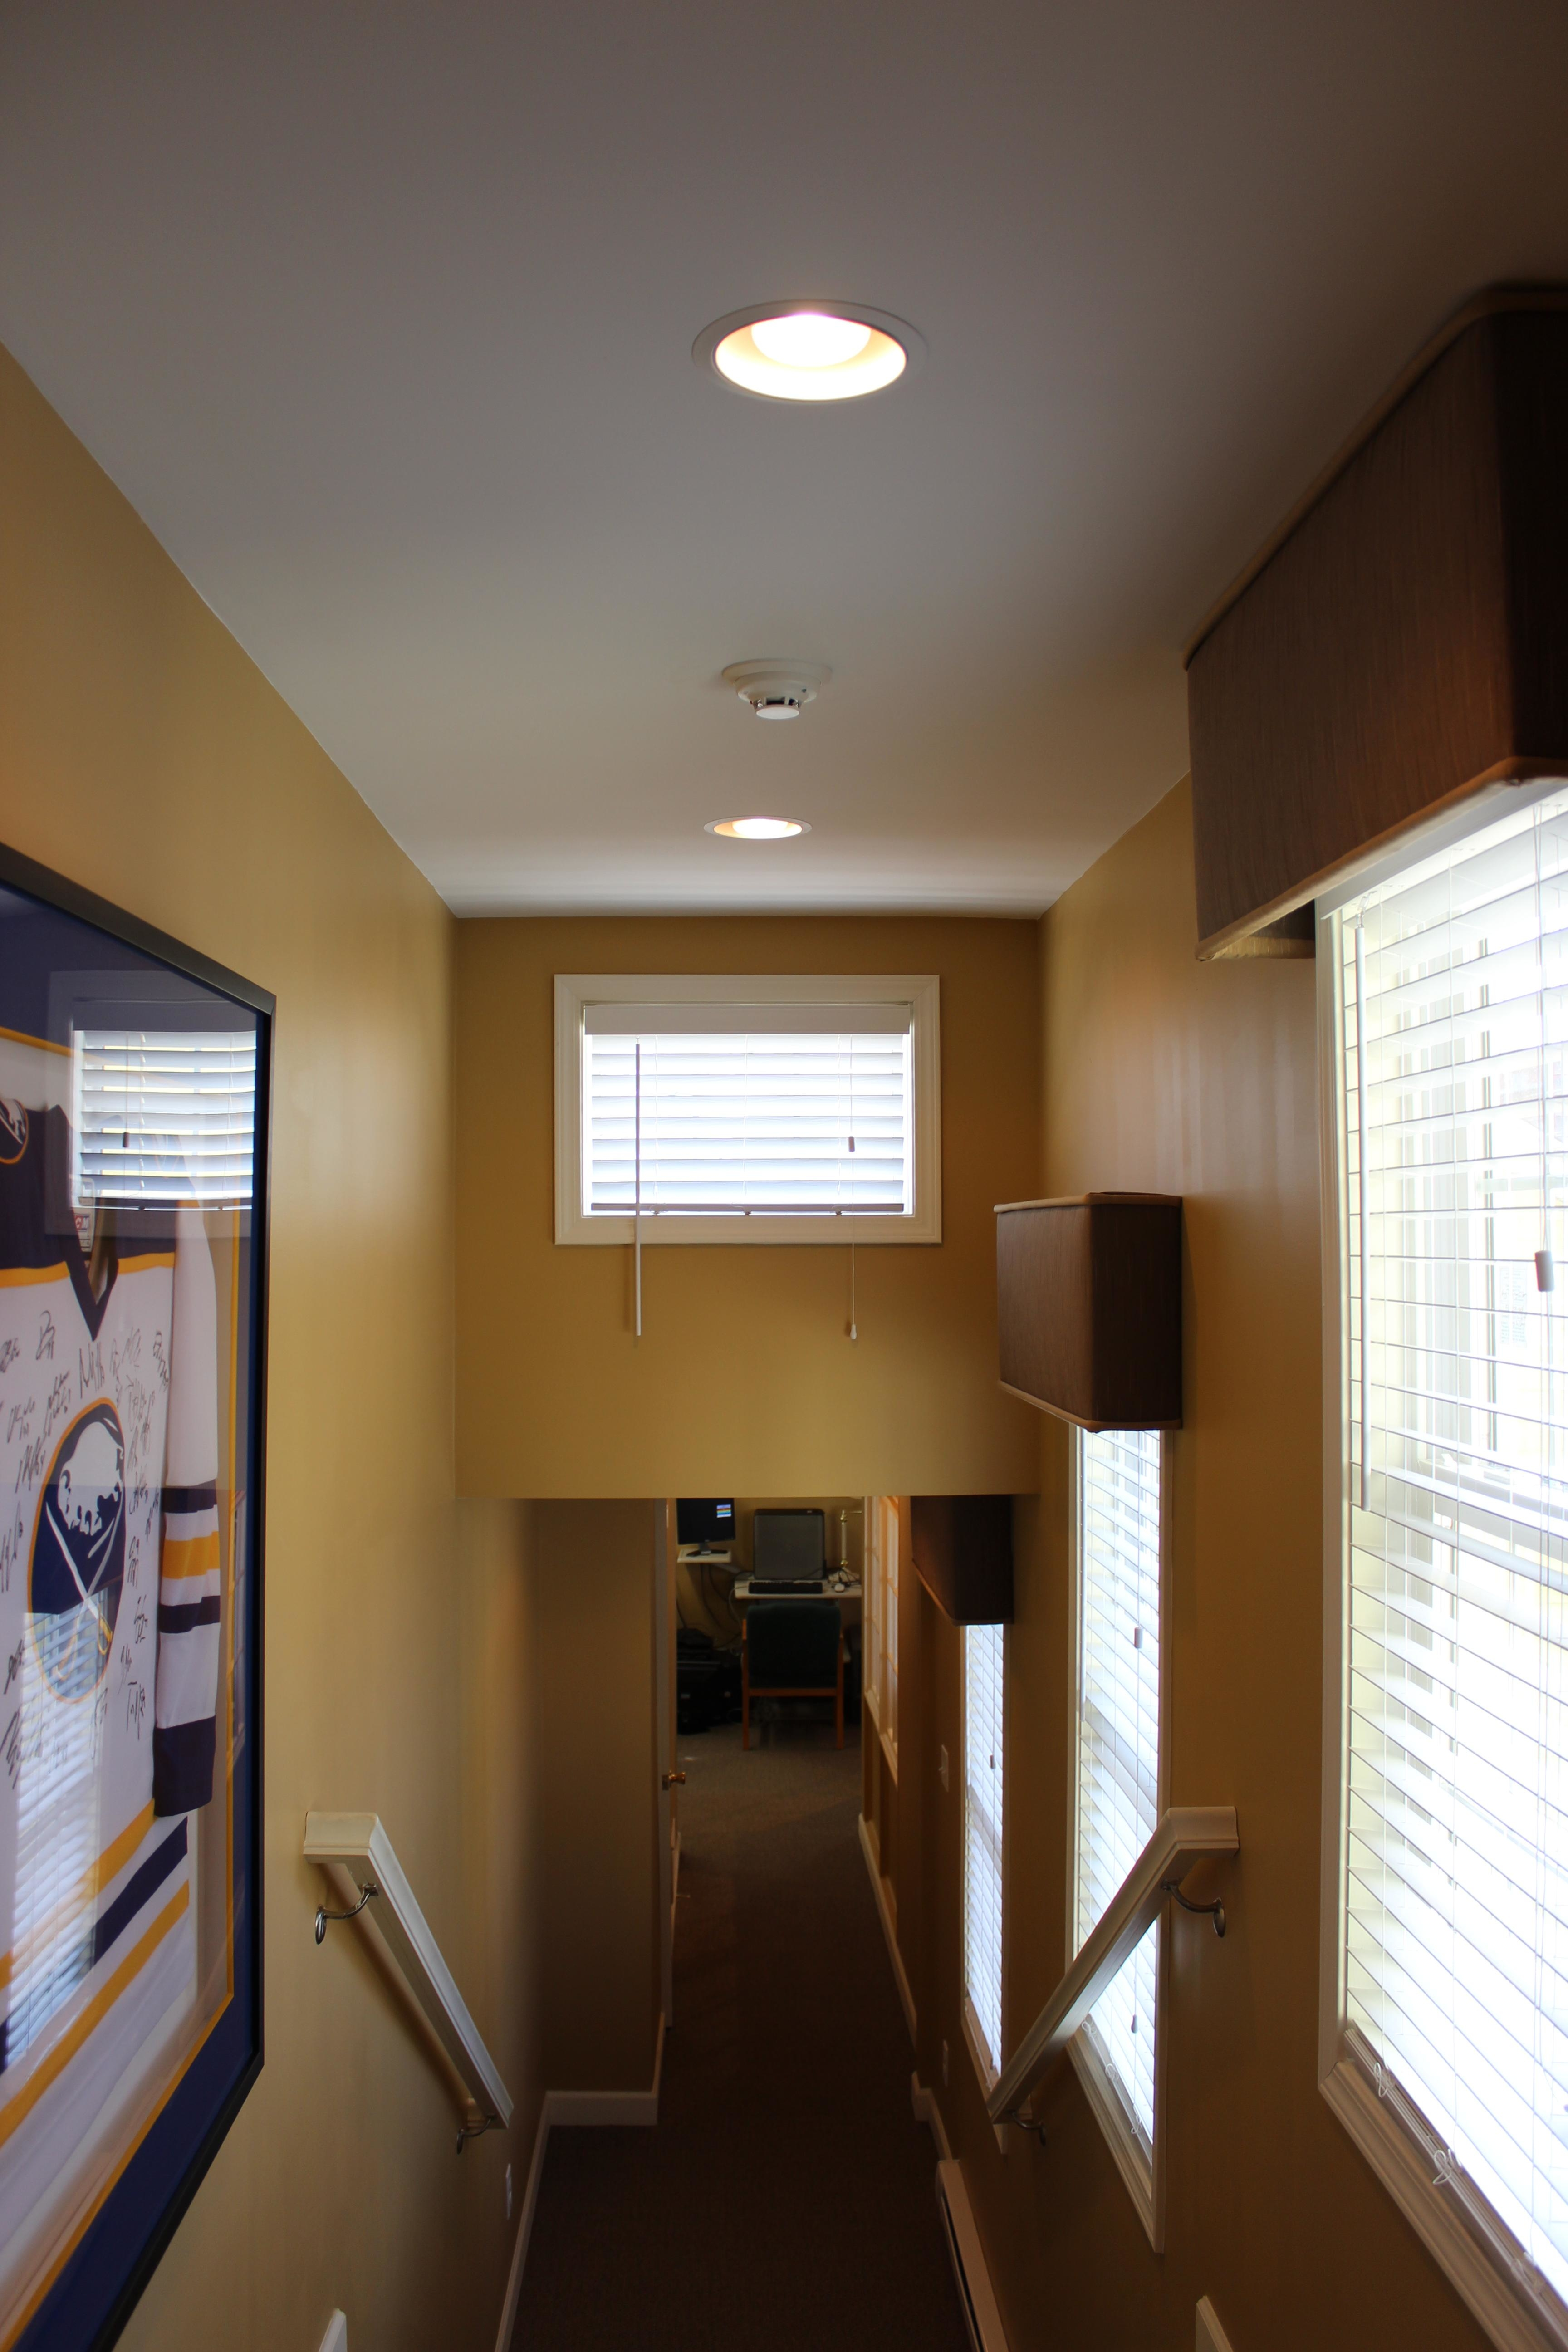 Creative remodeling services llc orchard park ny www for Creative renovations